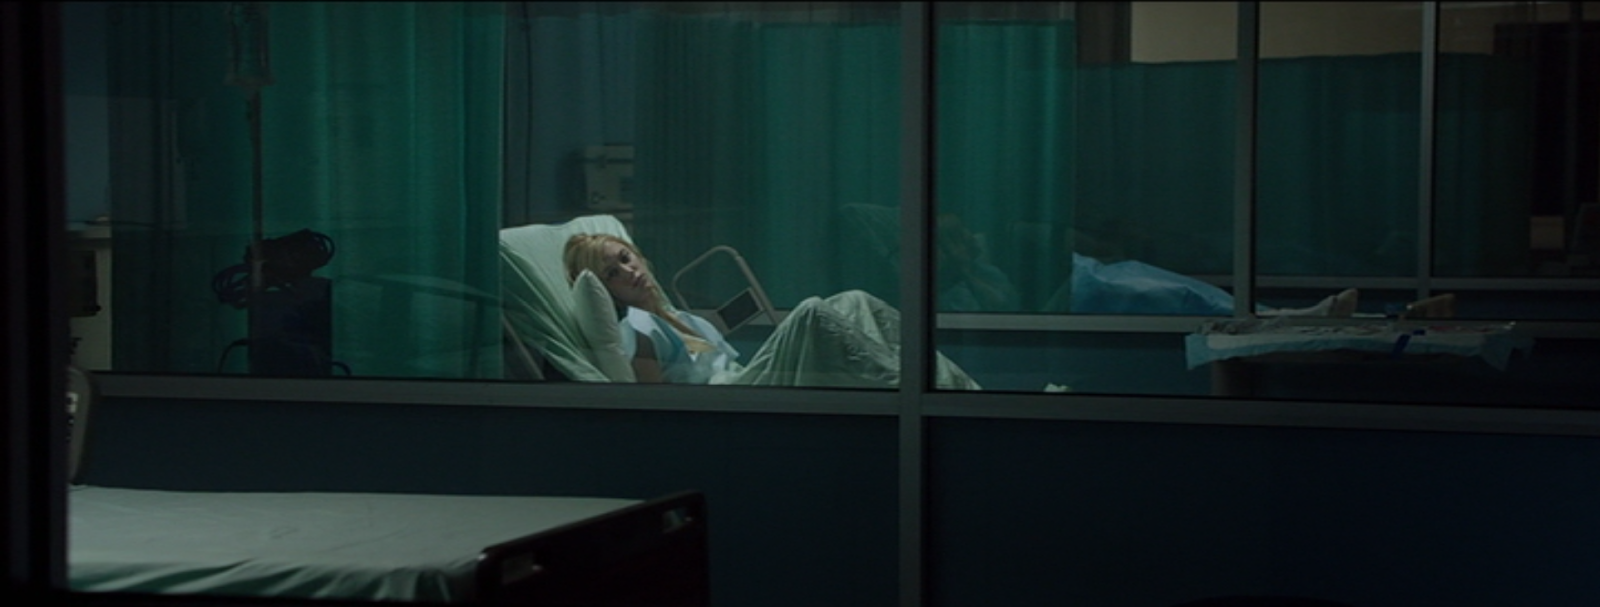 Jay lays in a hospital bed behind a glass partition. The room is darkened and empty.